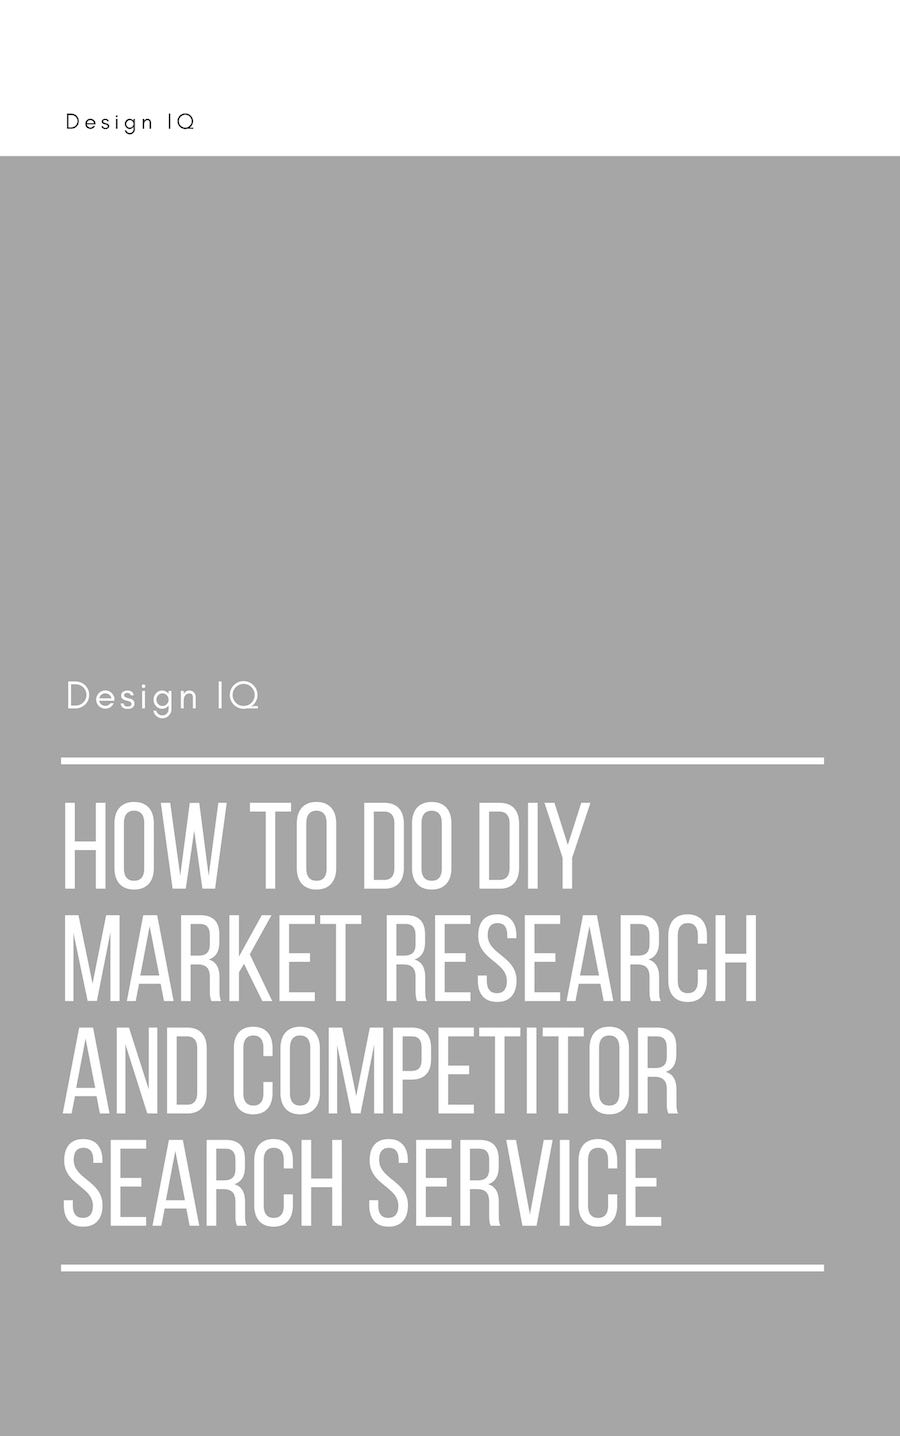 Graphic offering download of DIY Market Research and competitor search service